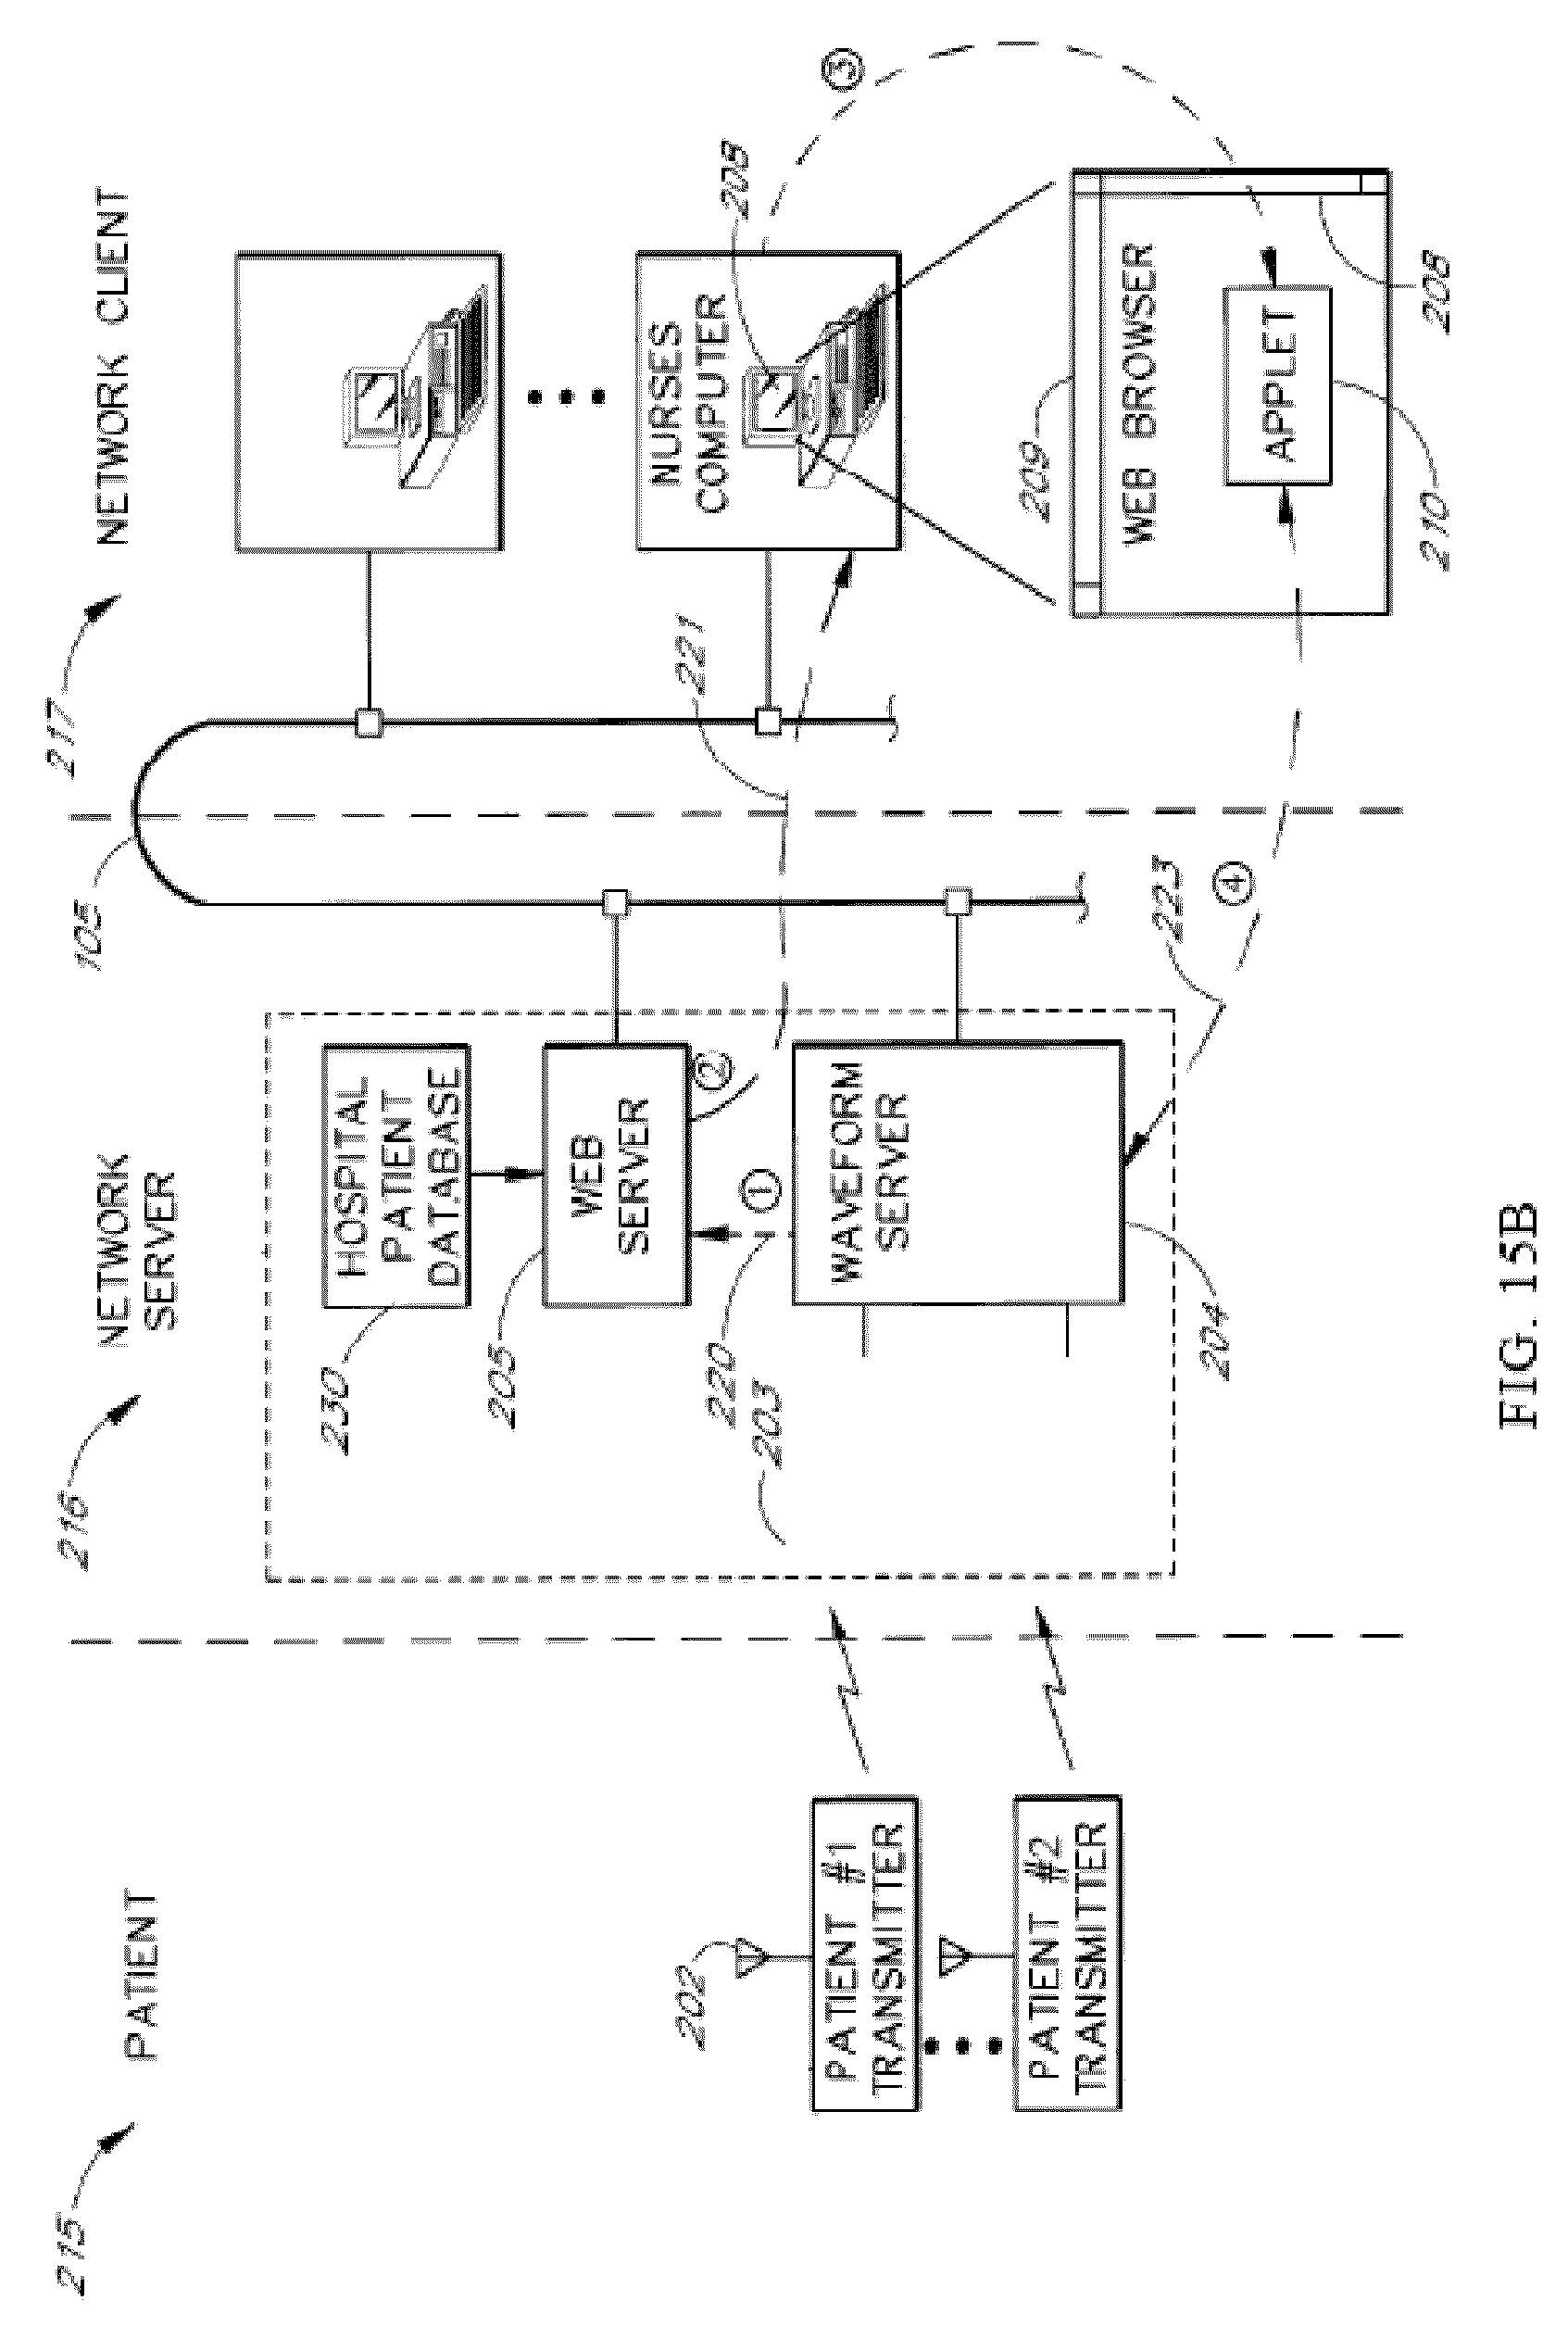 Patent Us 9215980 B2 Block Diagram Of Hidden Active Cell Phone Detector 0 Petitions